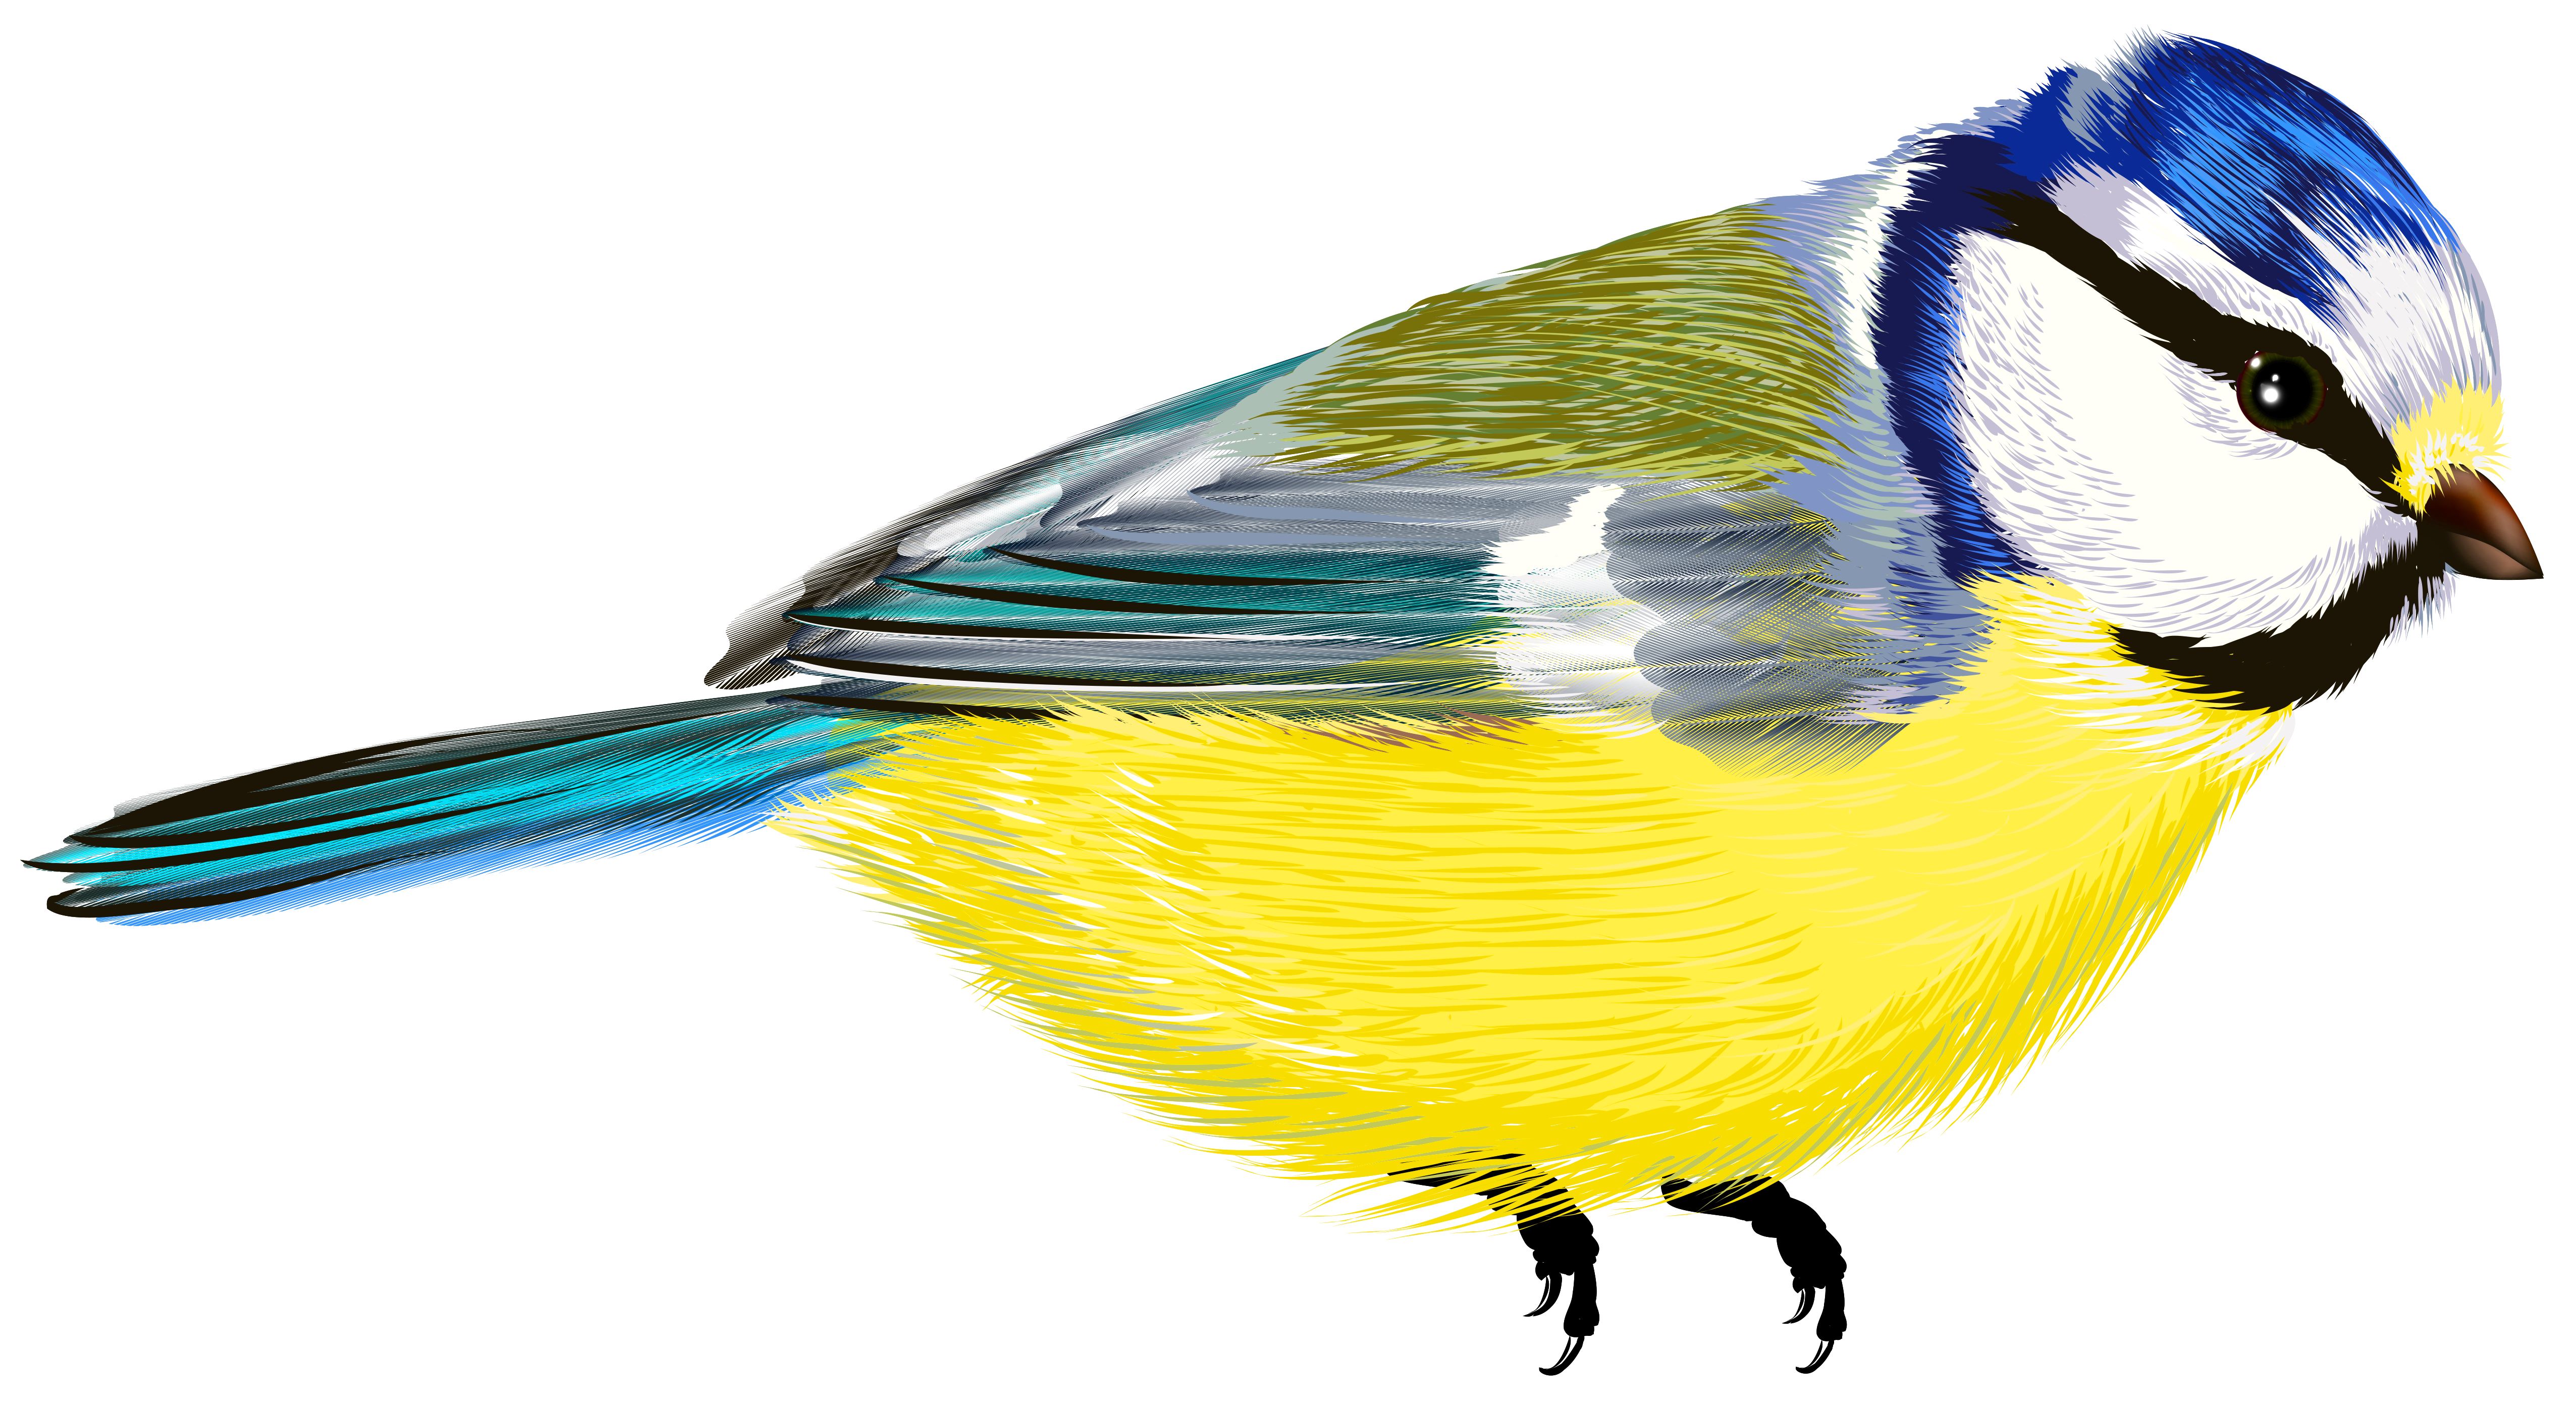 Fat Colored Bird Illustration HD Clipart, Sparrow, Migration, Stroll